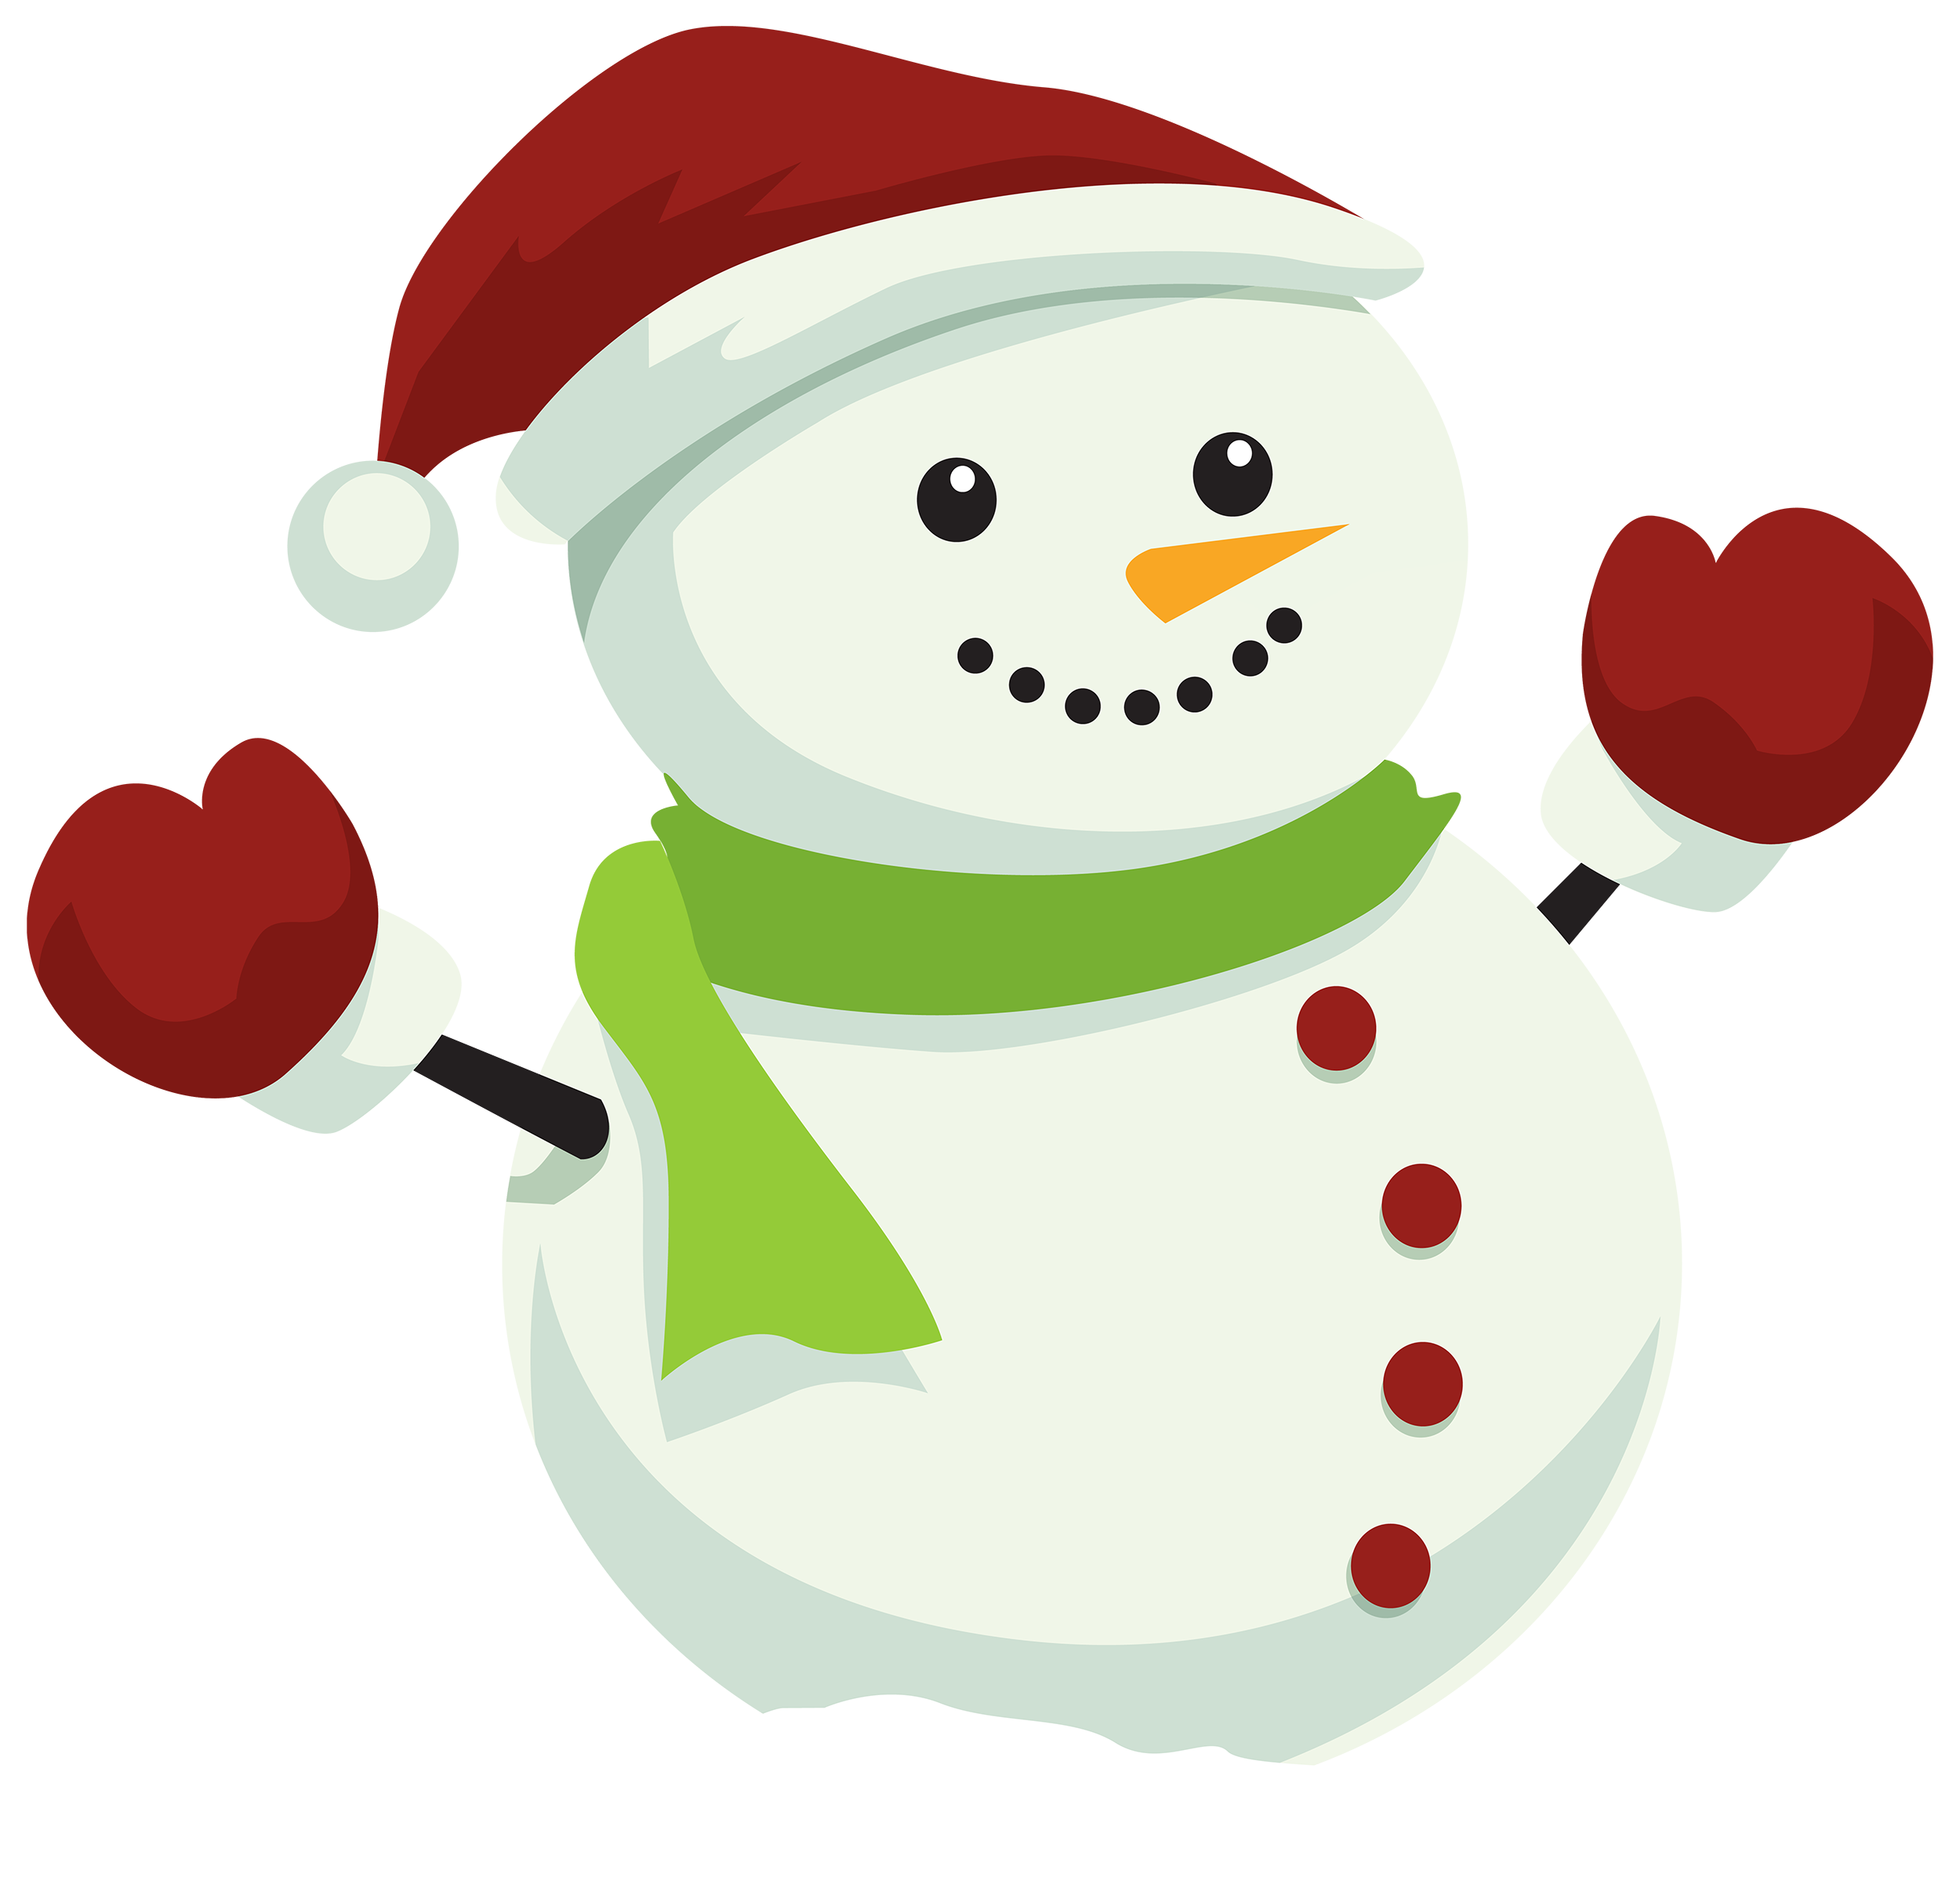 Christmas cartoon png. Snowman with hat clipart